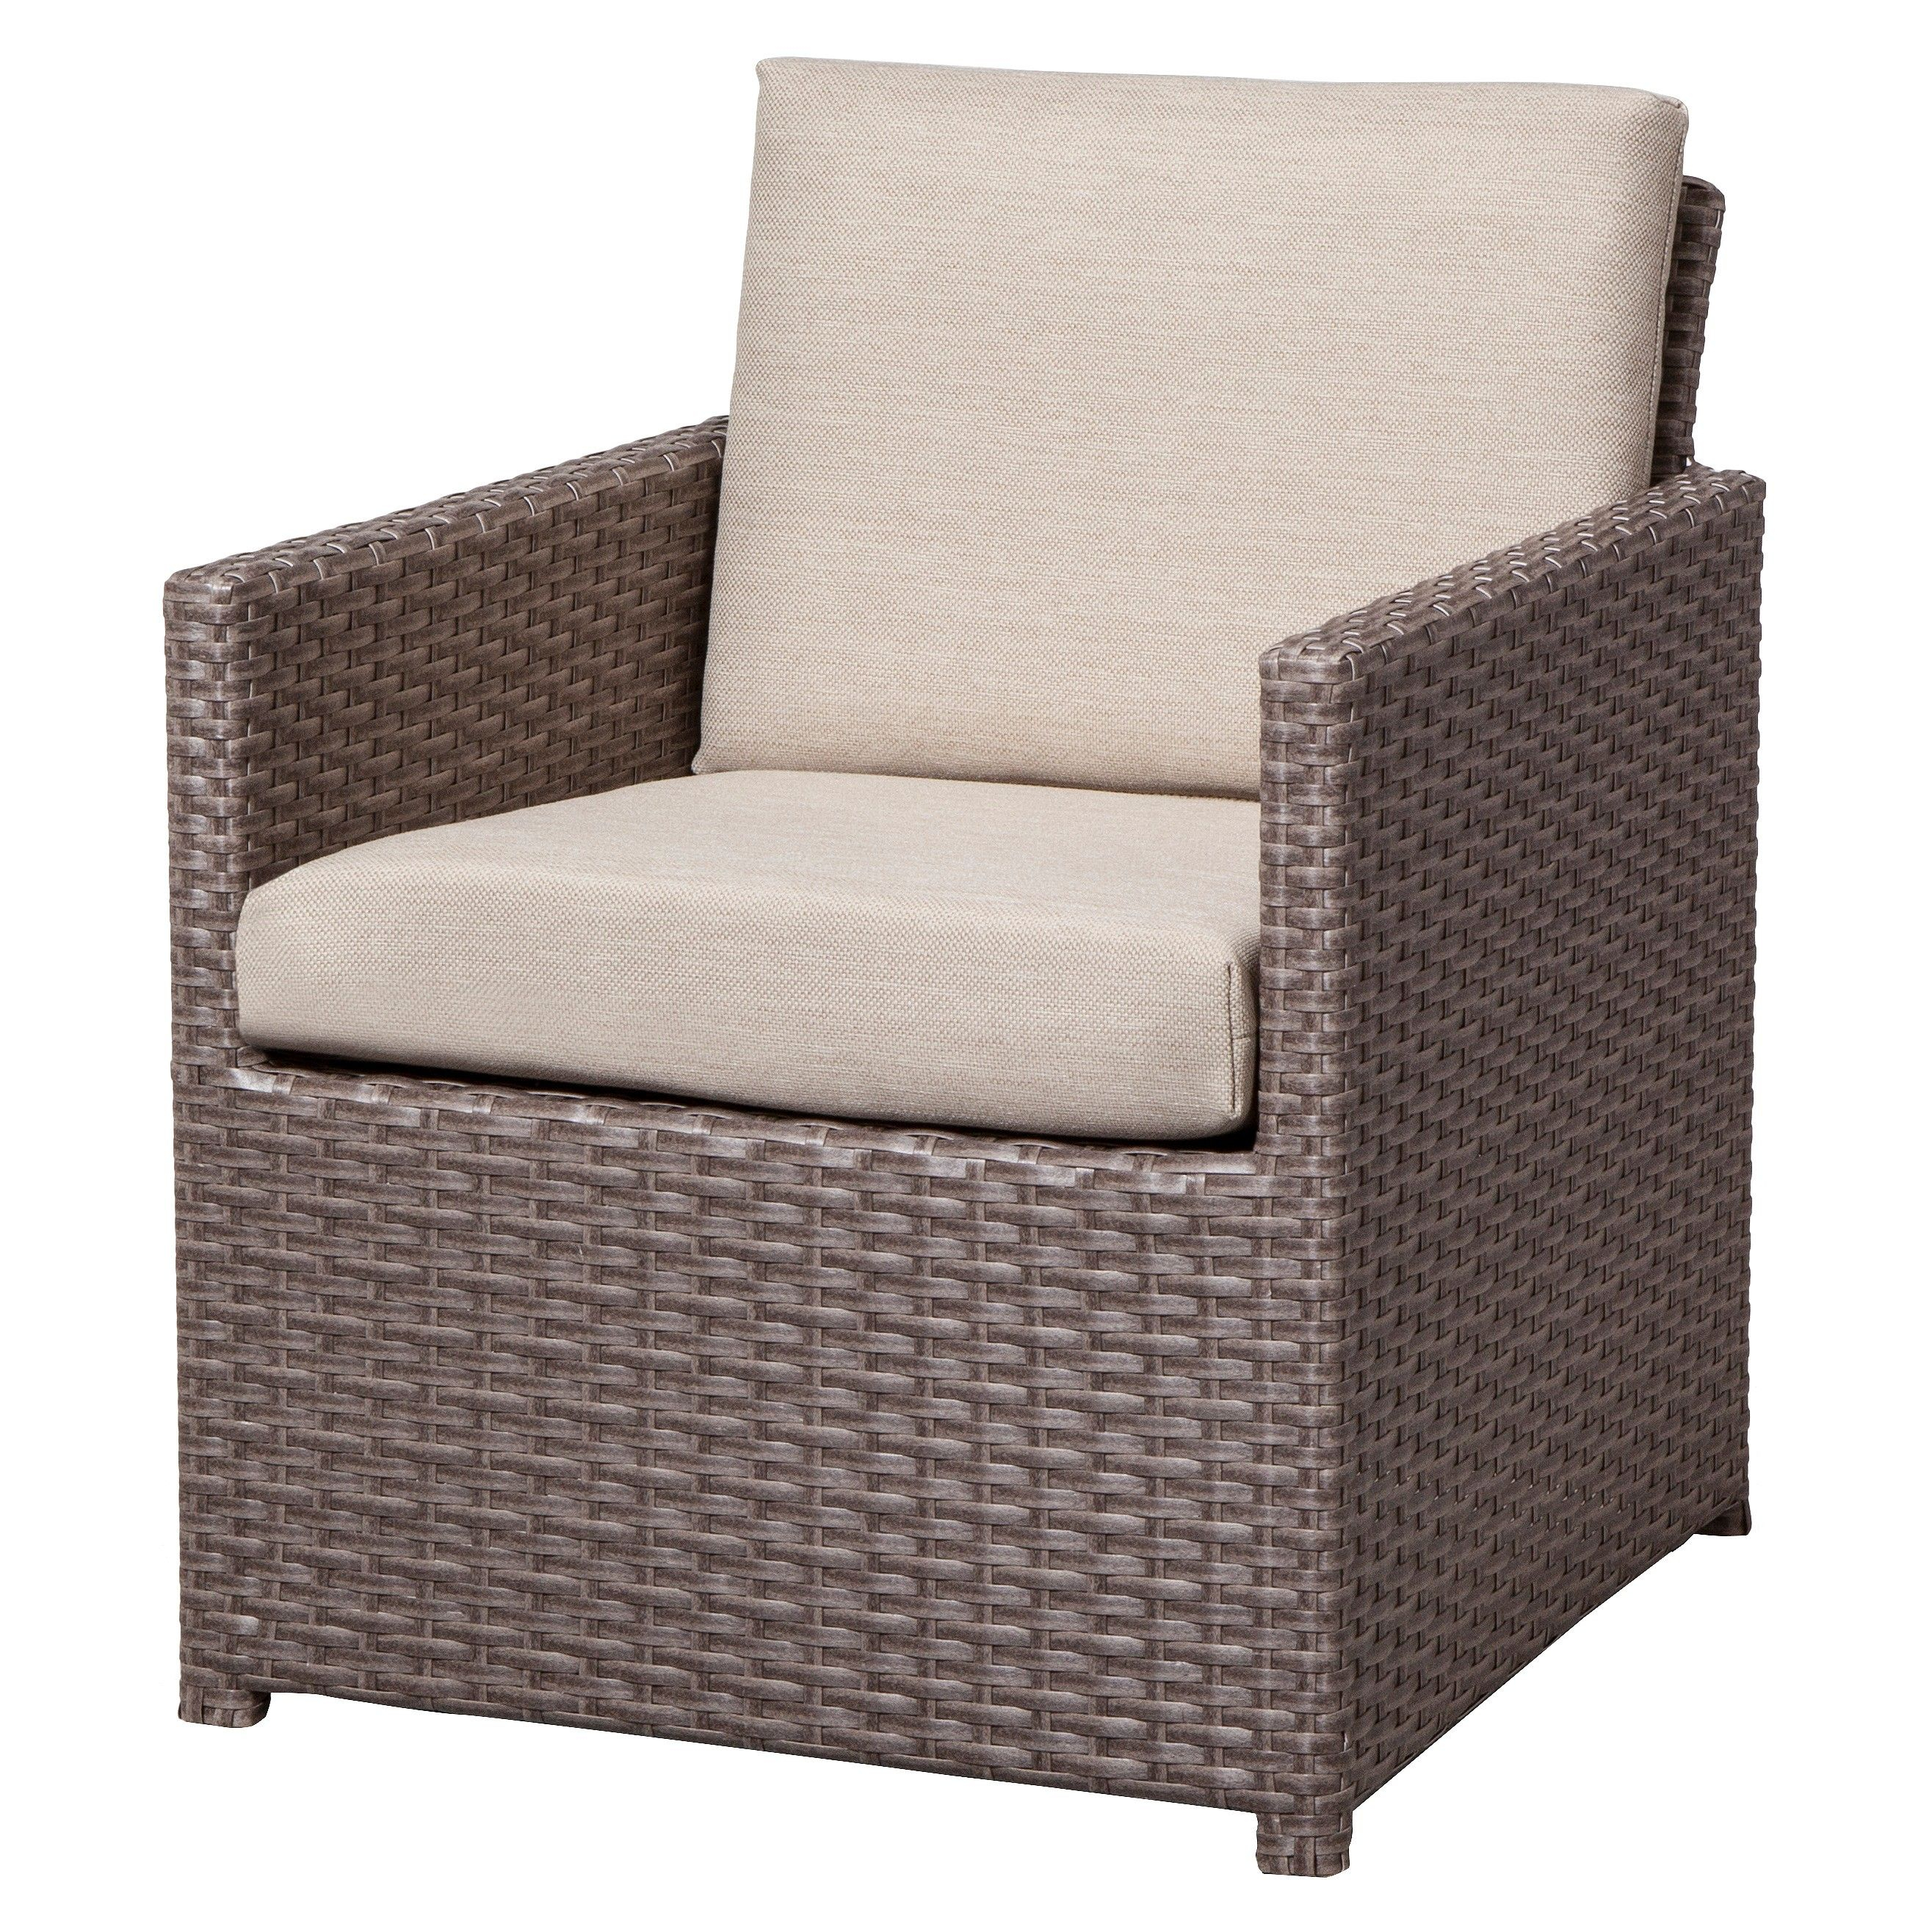 Threshold Heatherstone Wicker Kids Patio Chair Target throughout size 2631 X 2631